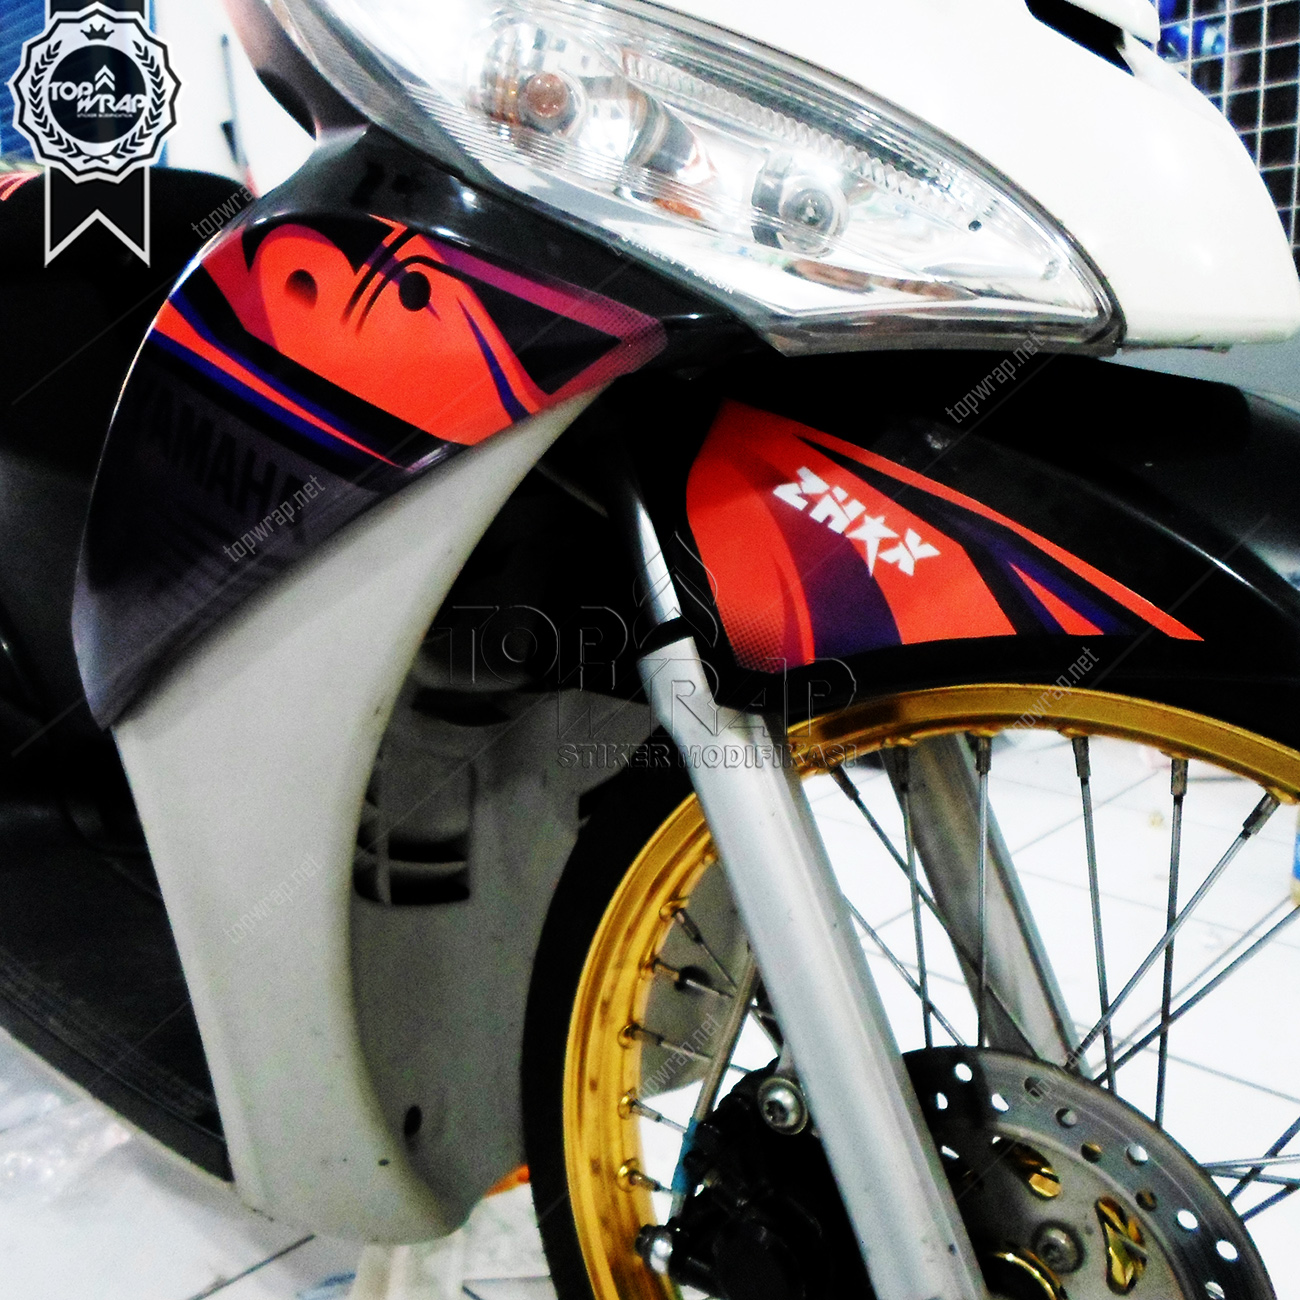 Download Ide Modif Cutting Stiker Motor Vixion Terbaru Botol - Mio decalsdecal motor mio tema transformer powermodif pinterest